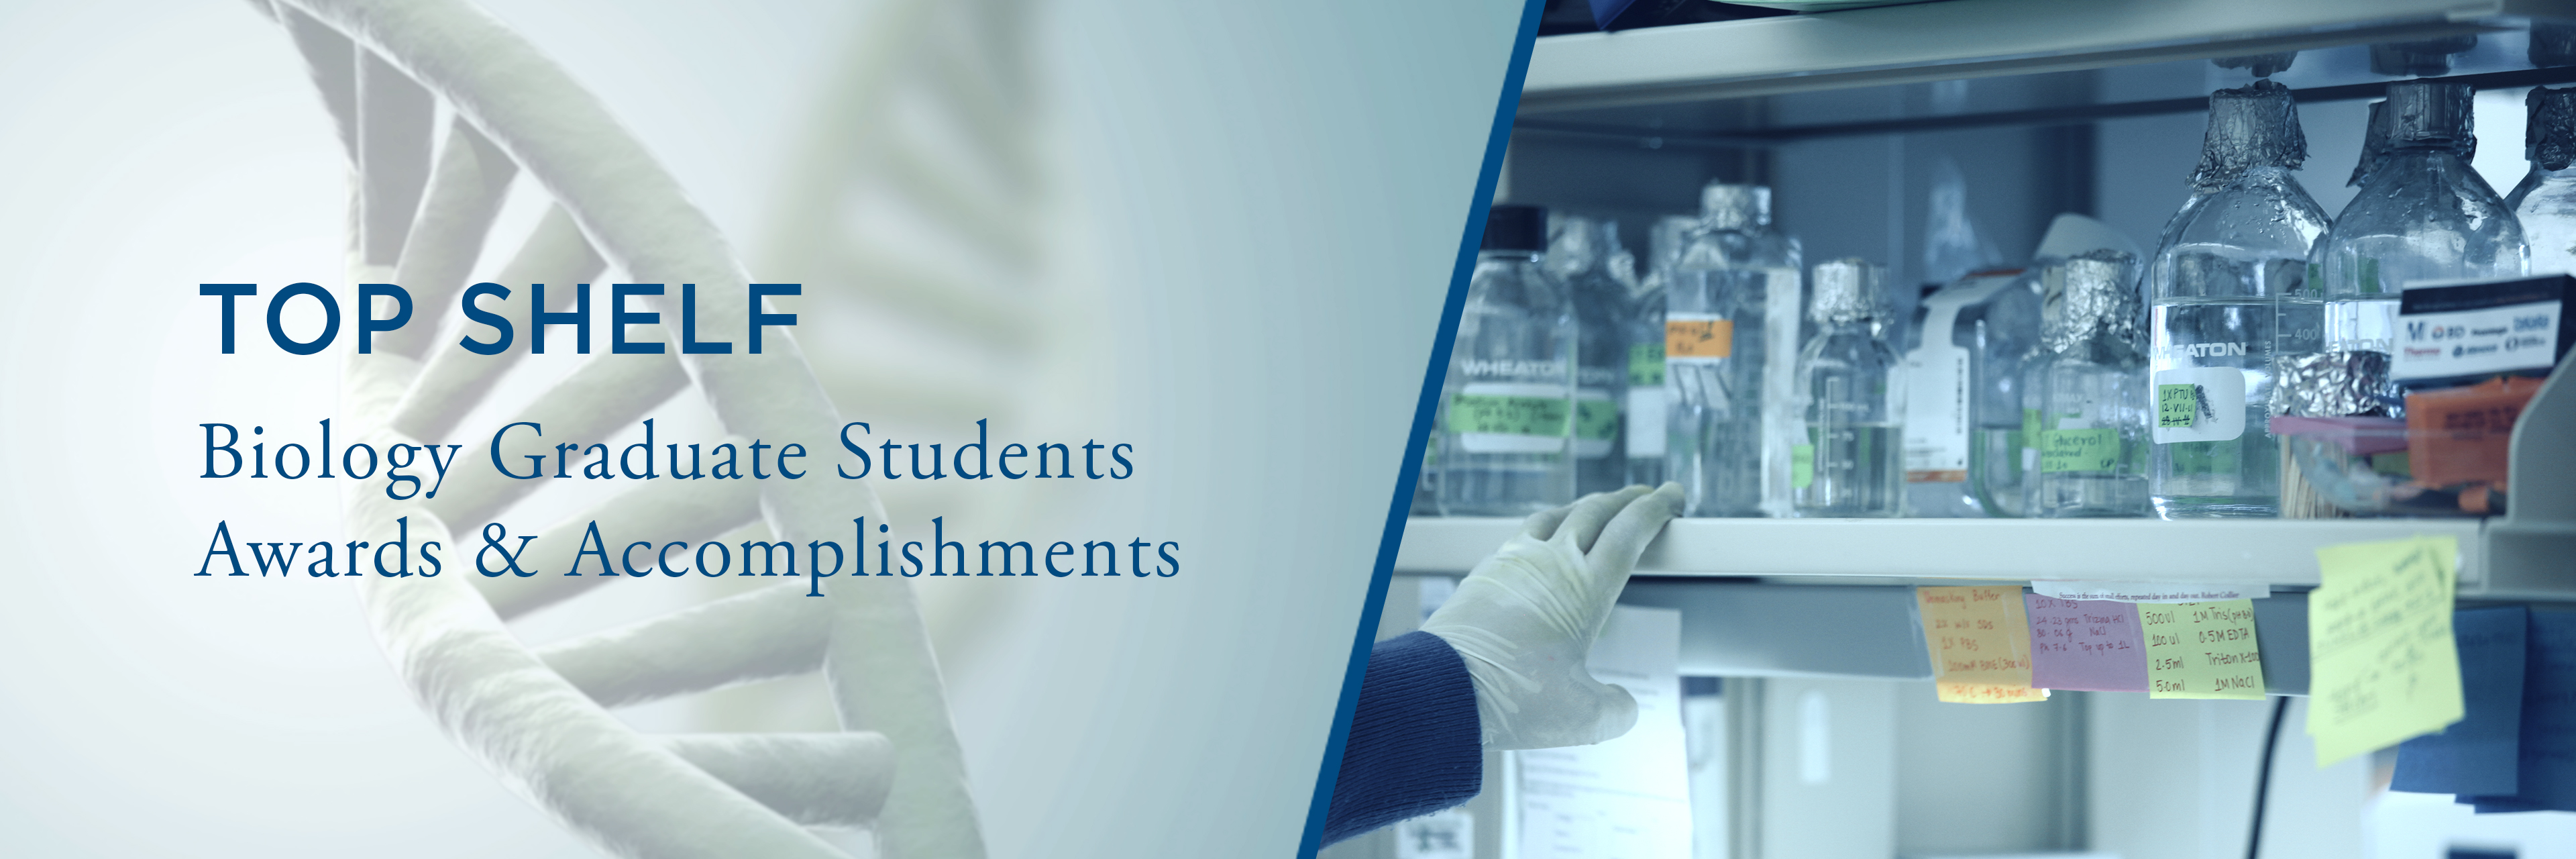 online thesis microbiology Writing a shakespeare essay phd thesis in environmental microbiology cv writing services perth writing dissertation steps.